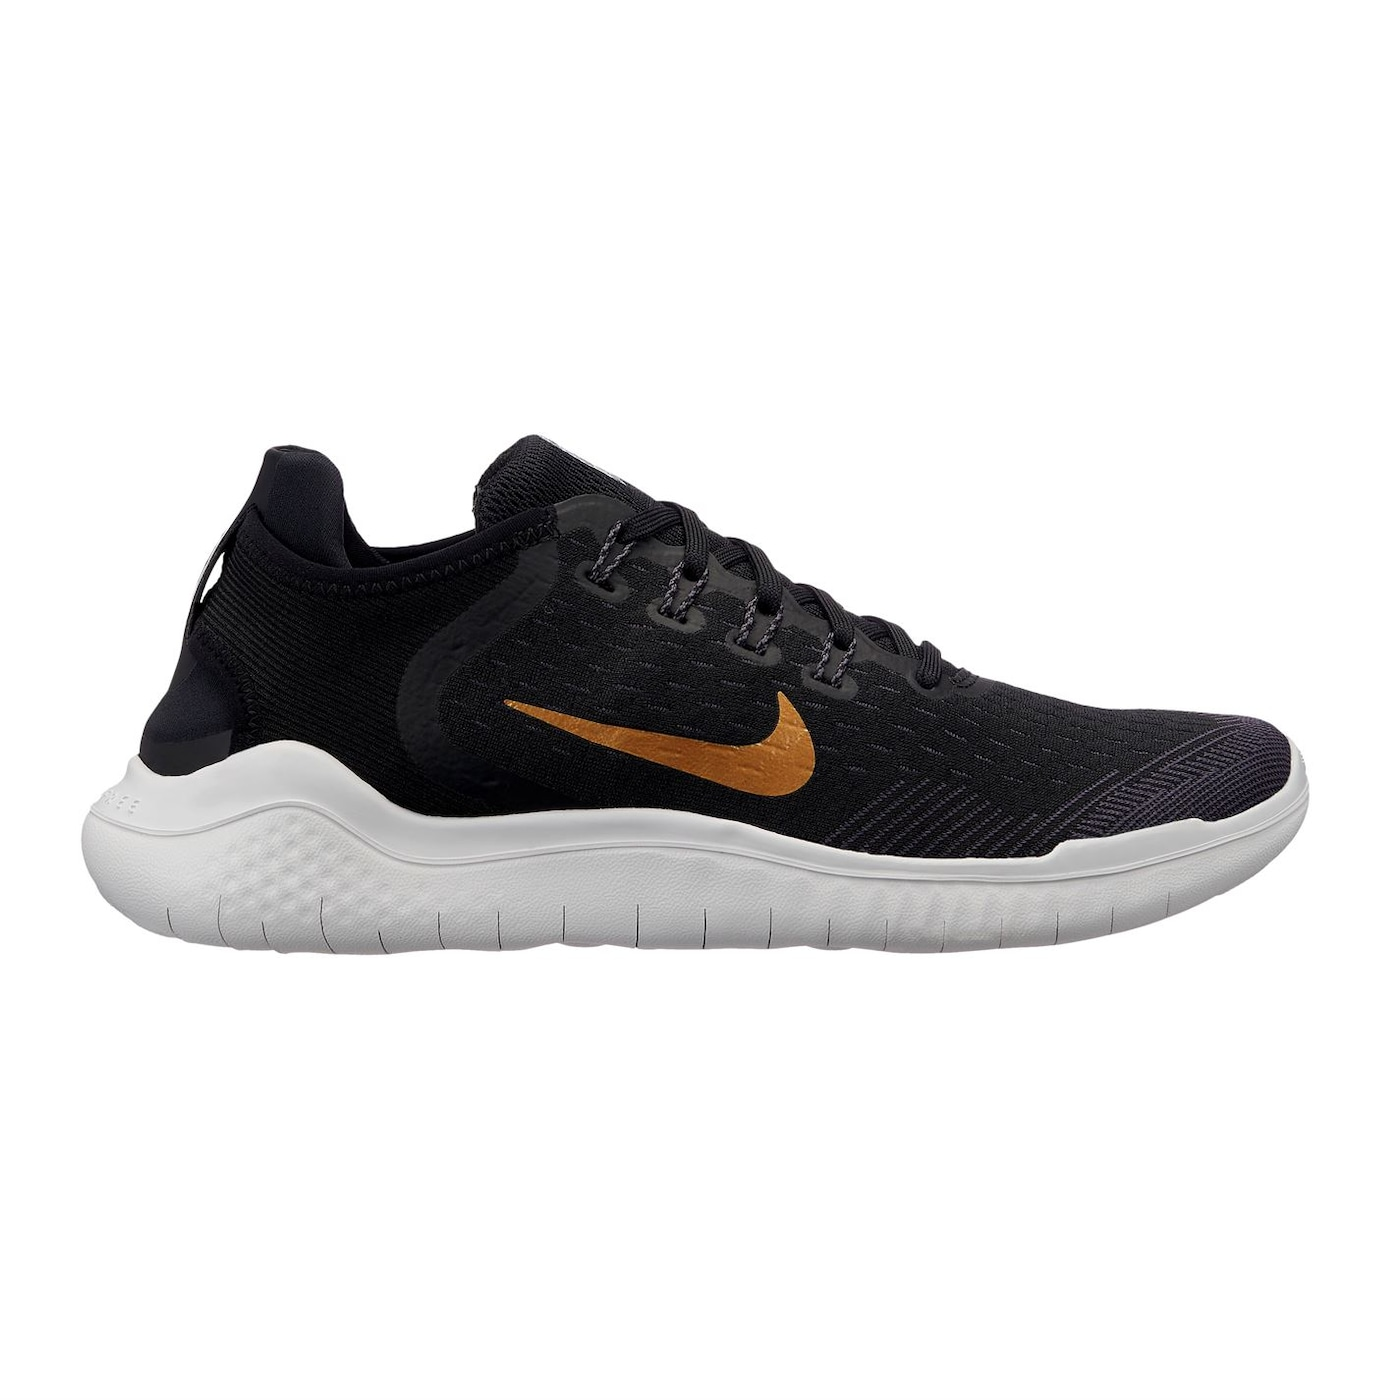 Nike Free Run 2018 Trainers Ladies